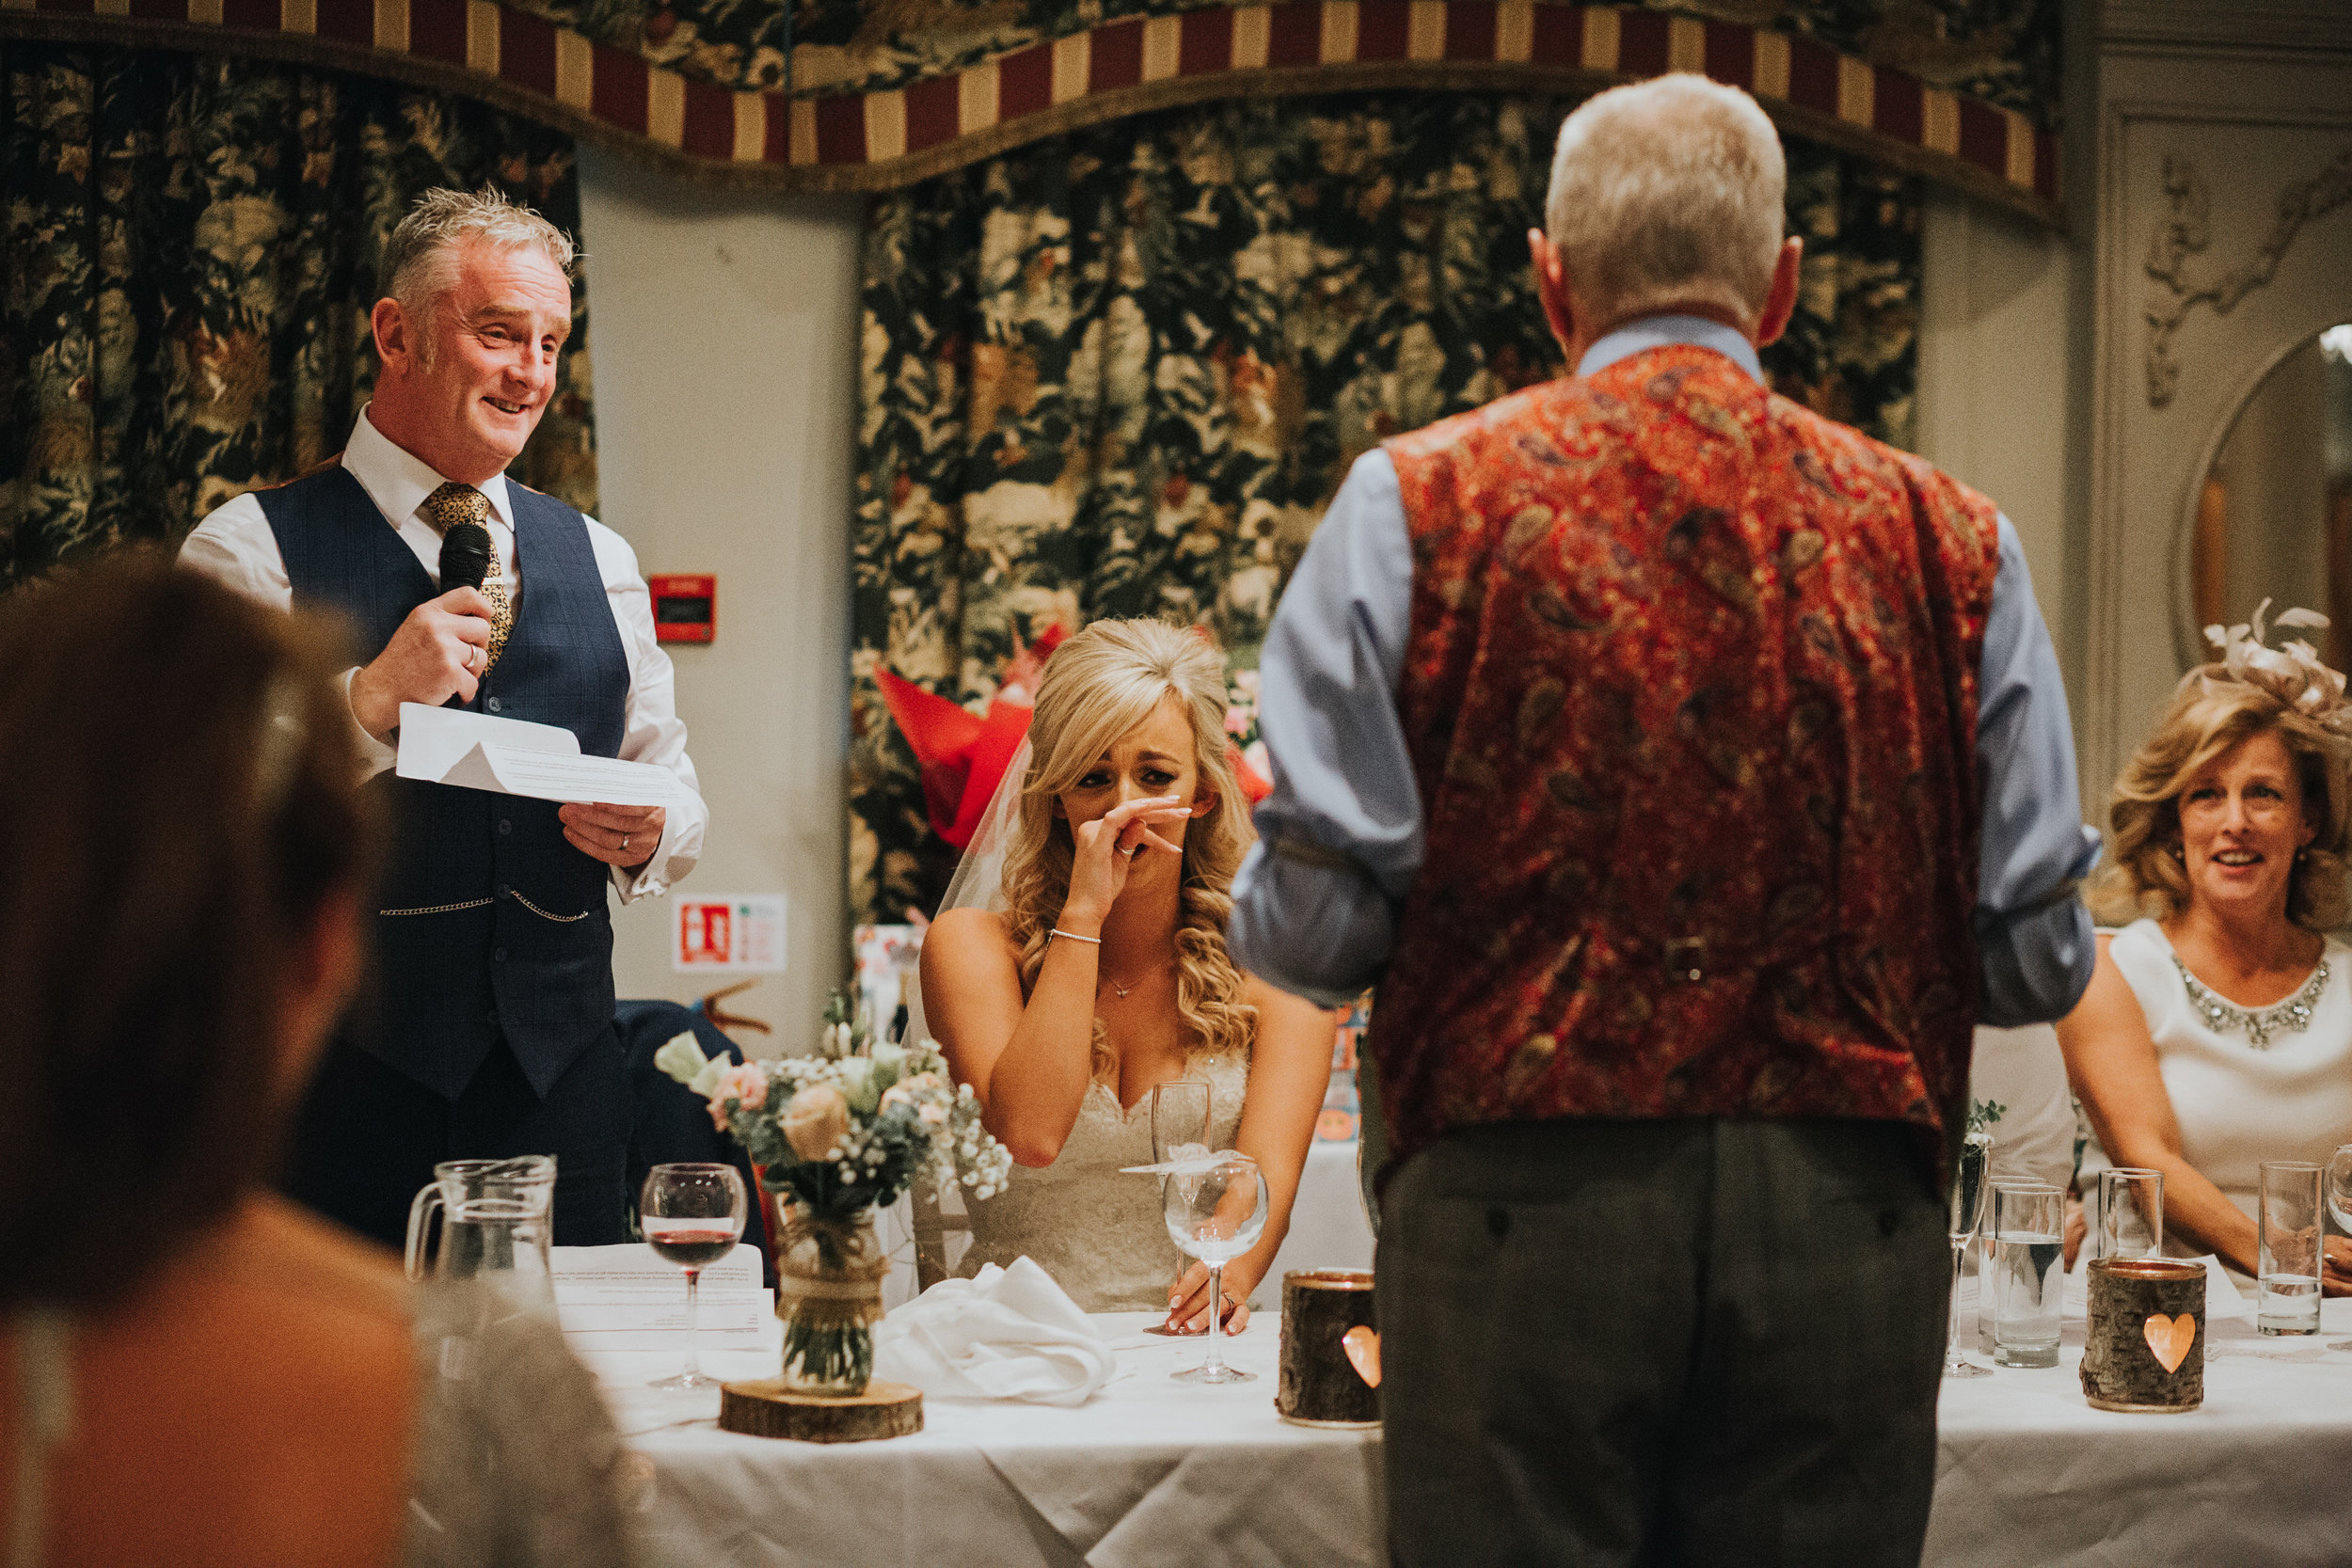 Brides uncle approaches table and bride holds hand over her mouth laughing and looking scared.